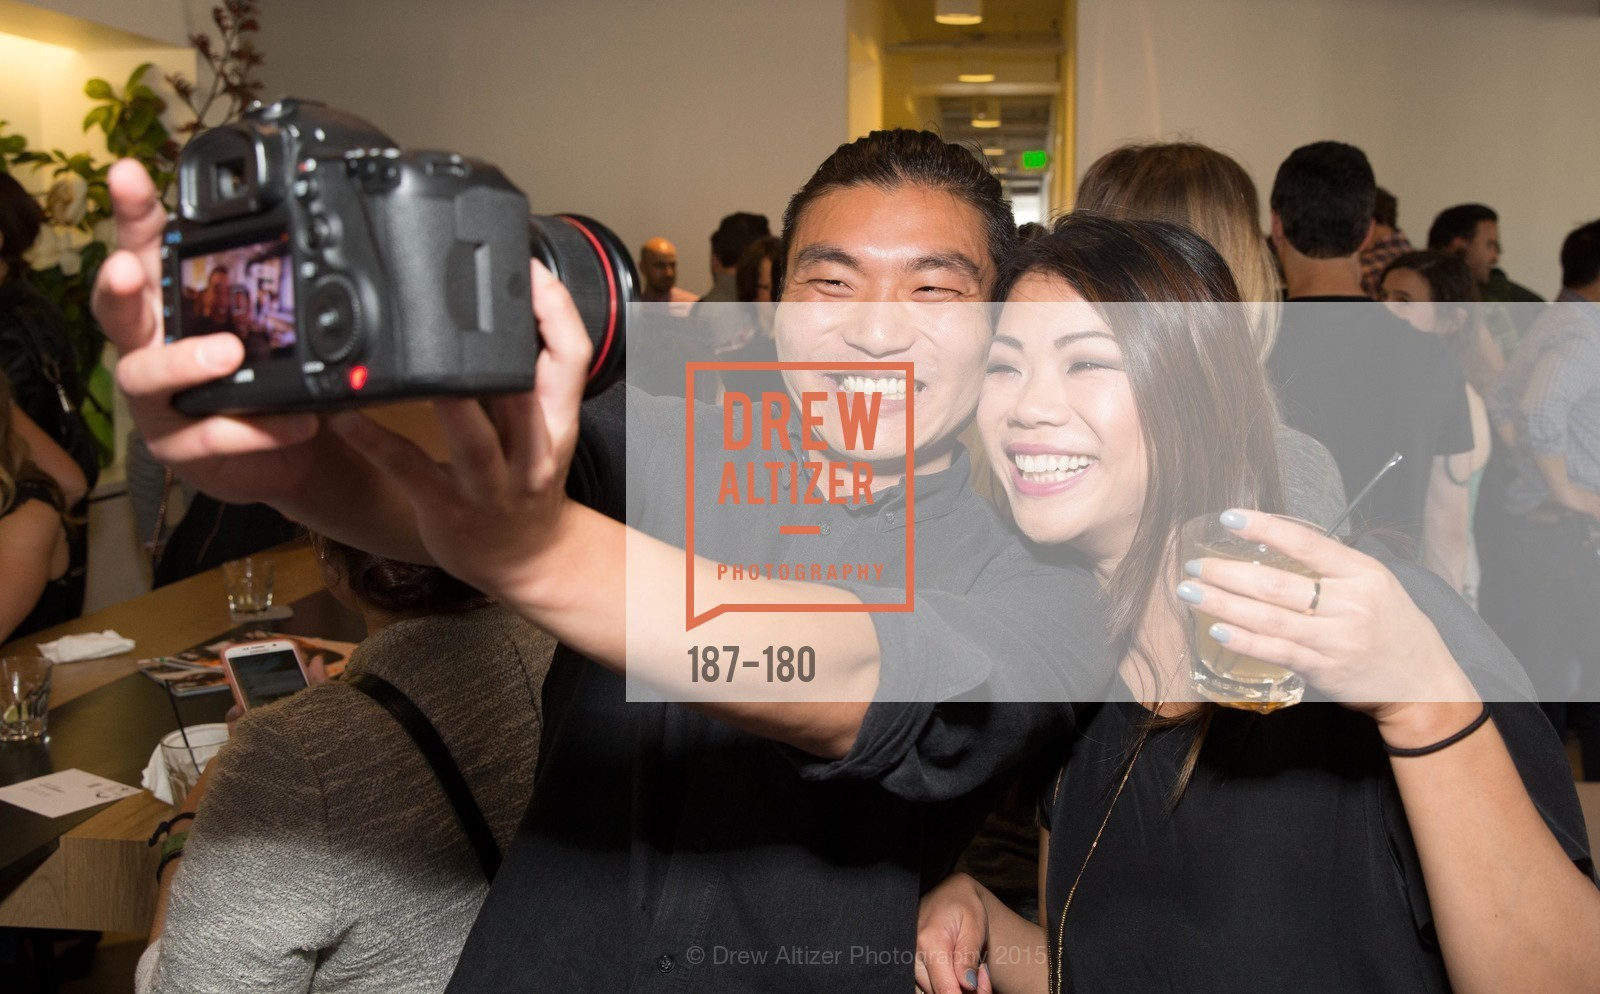 Top pics, Wired Magazine July Cover Release Celebration at New Wired Office, June 24th, 2015, Photo,Drew Altizer, Drew Altizer Photography, full-service event agency, private events, San Francisco photographer, photographer California